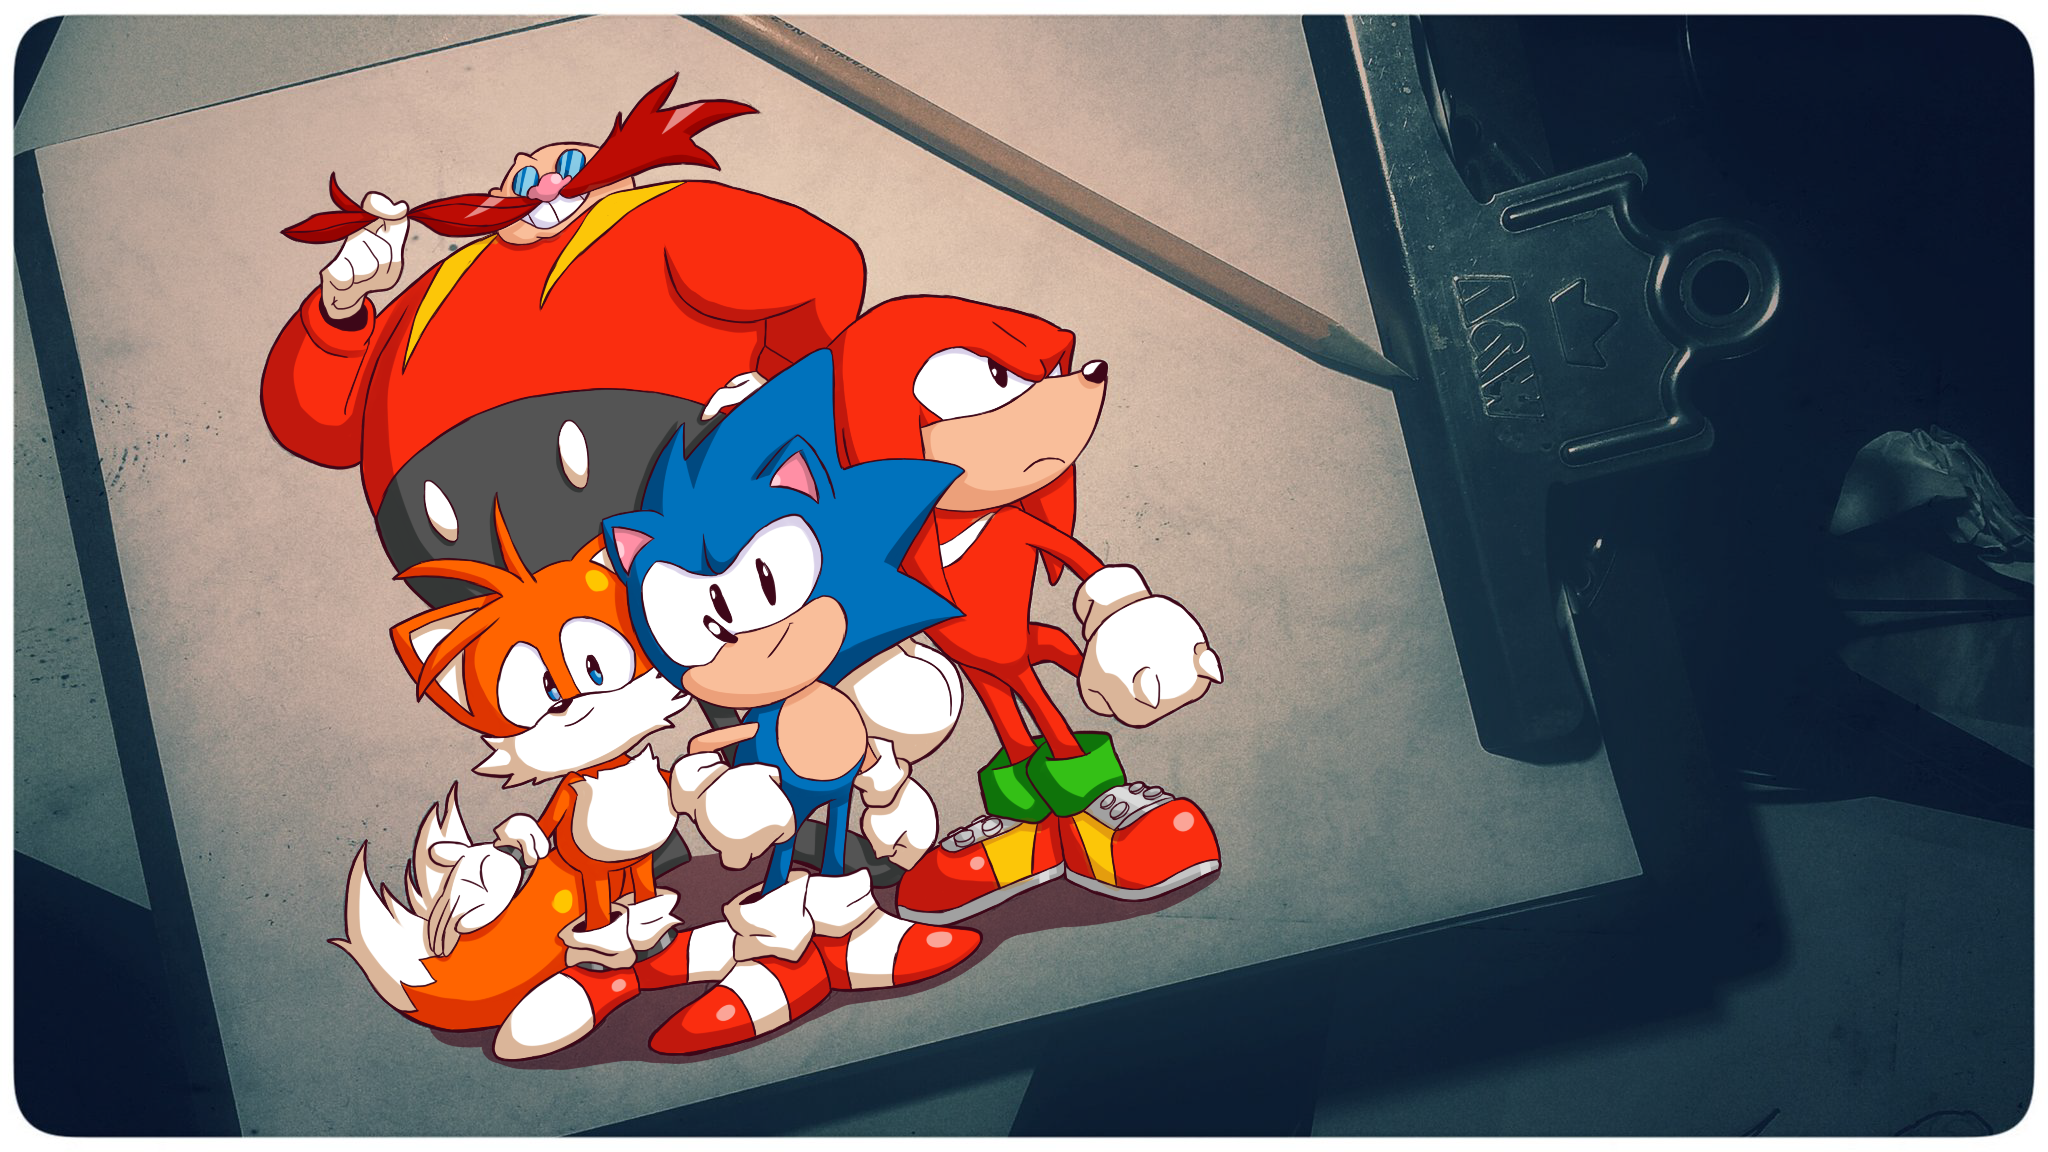 http://s8.picofile.com/file/8300066876/sonic_25th_fan_art_collab_by_animeartist569_dabehd5.png